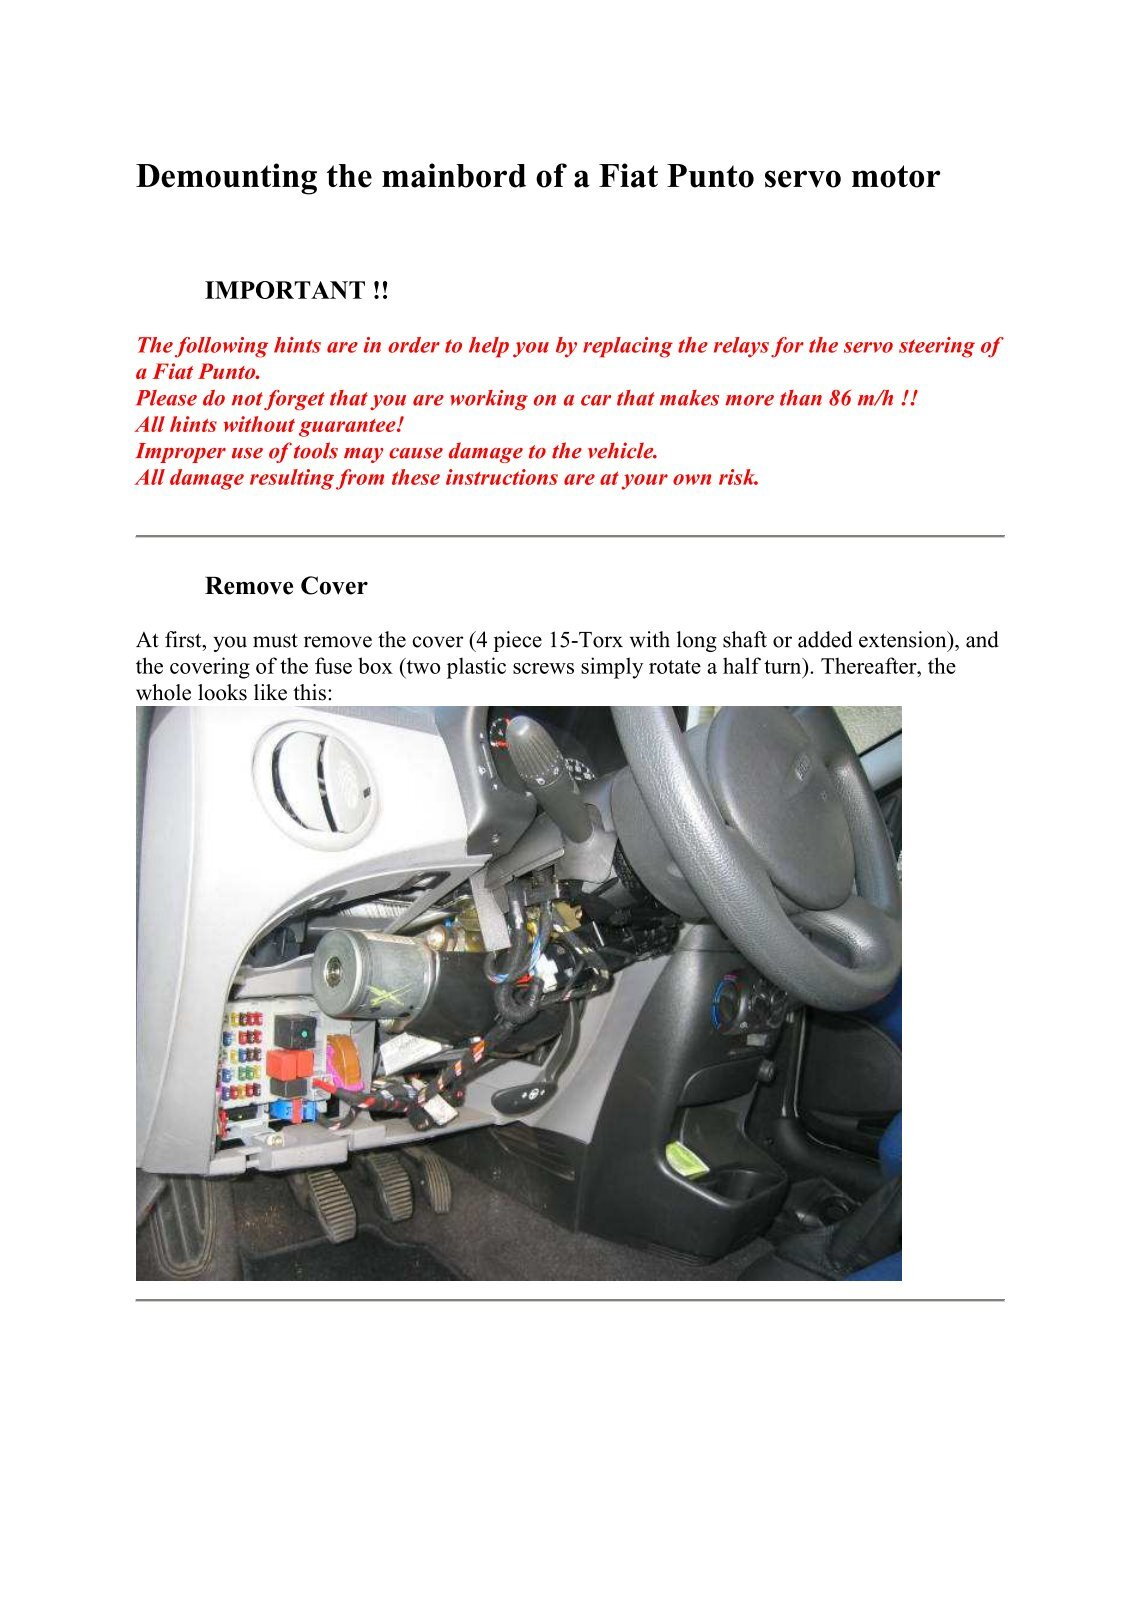 40 Free Magazines From Darisusde Fuse Box In Fiat Punto